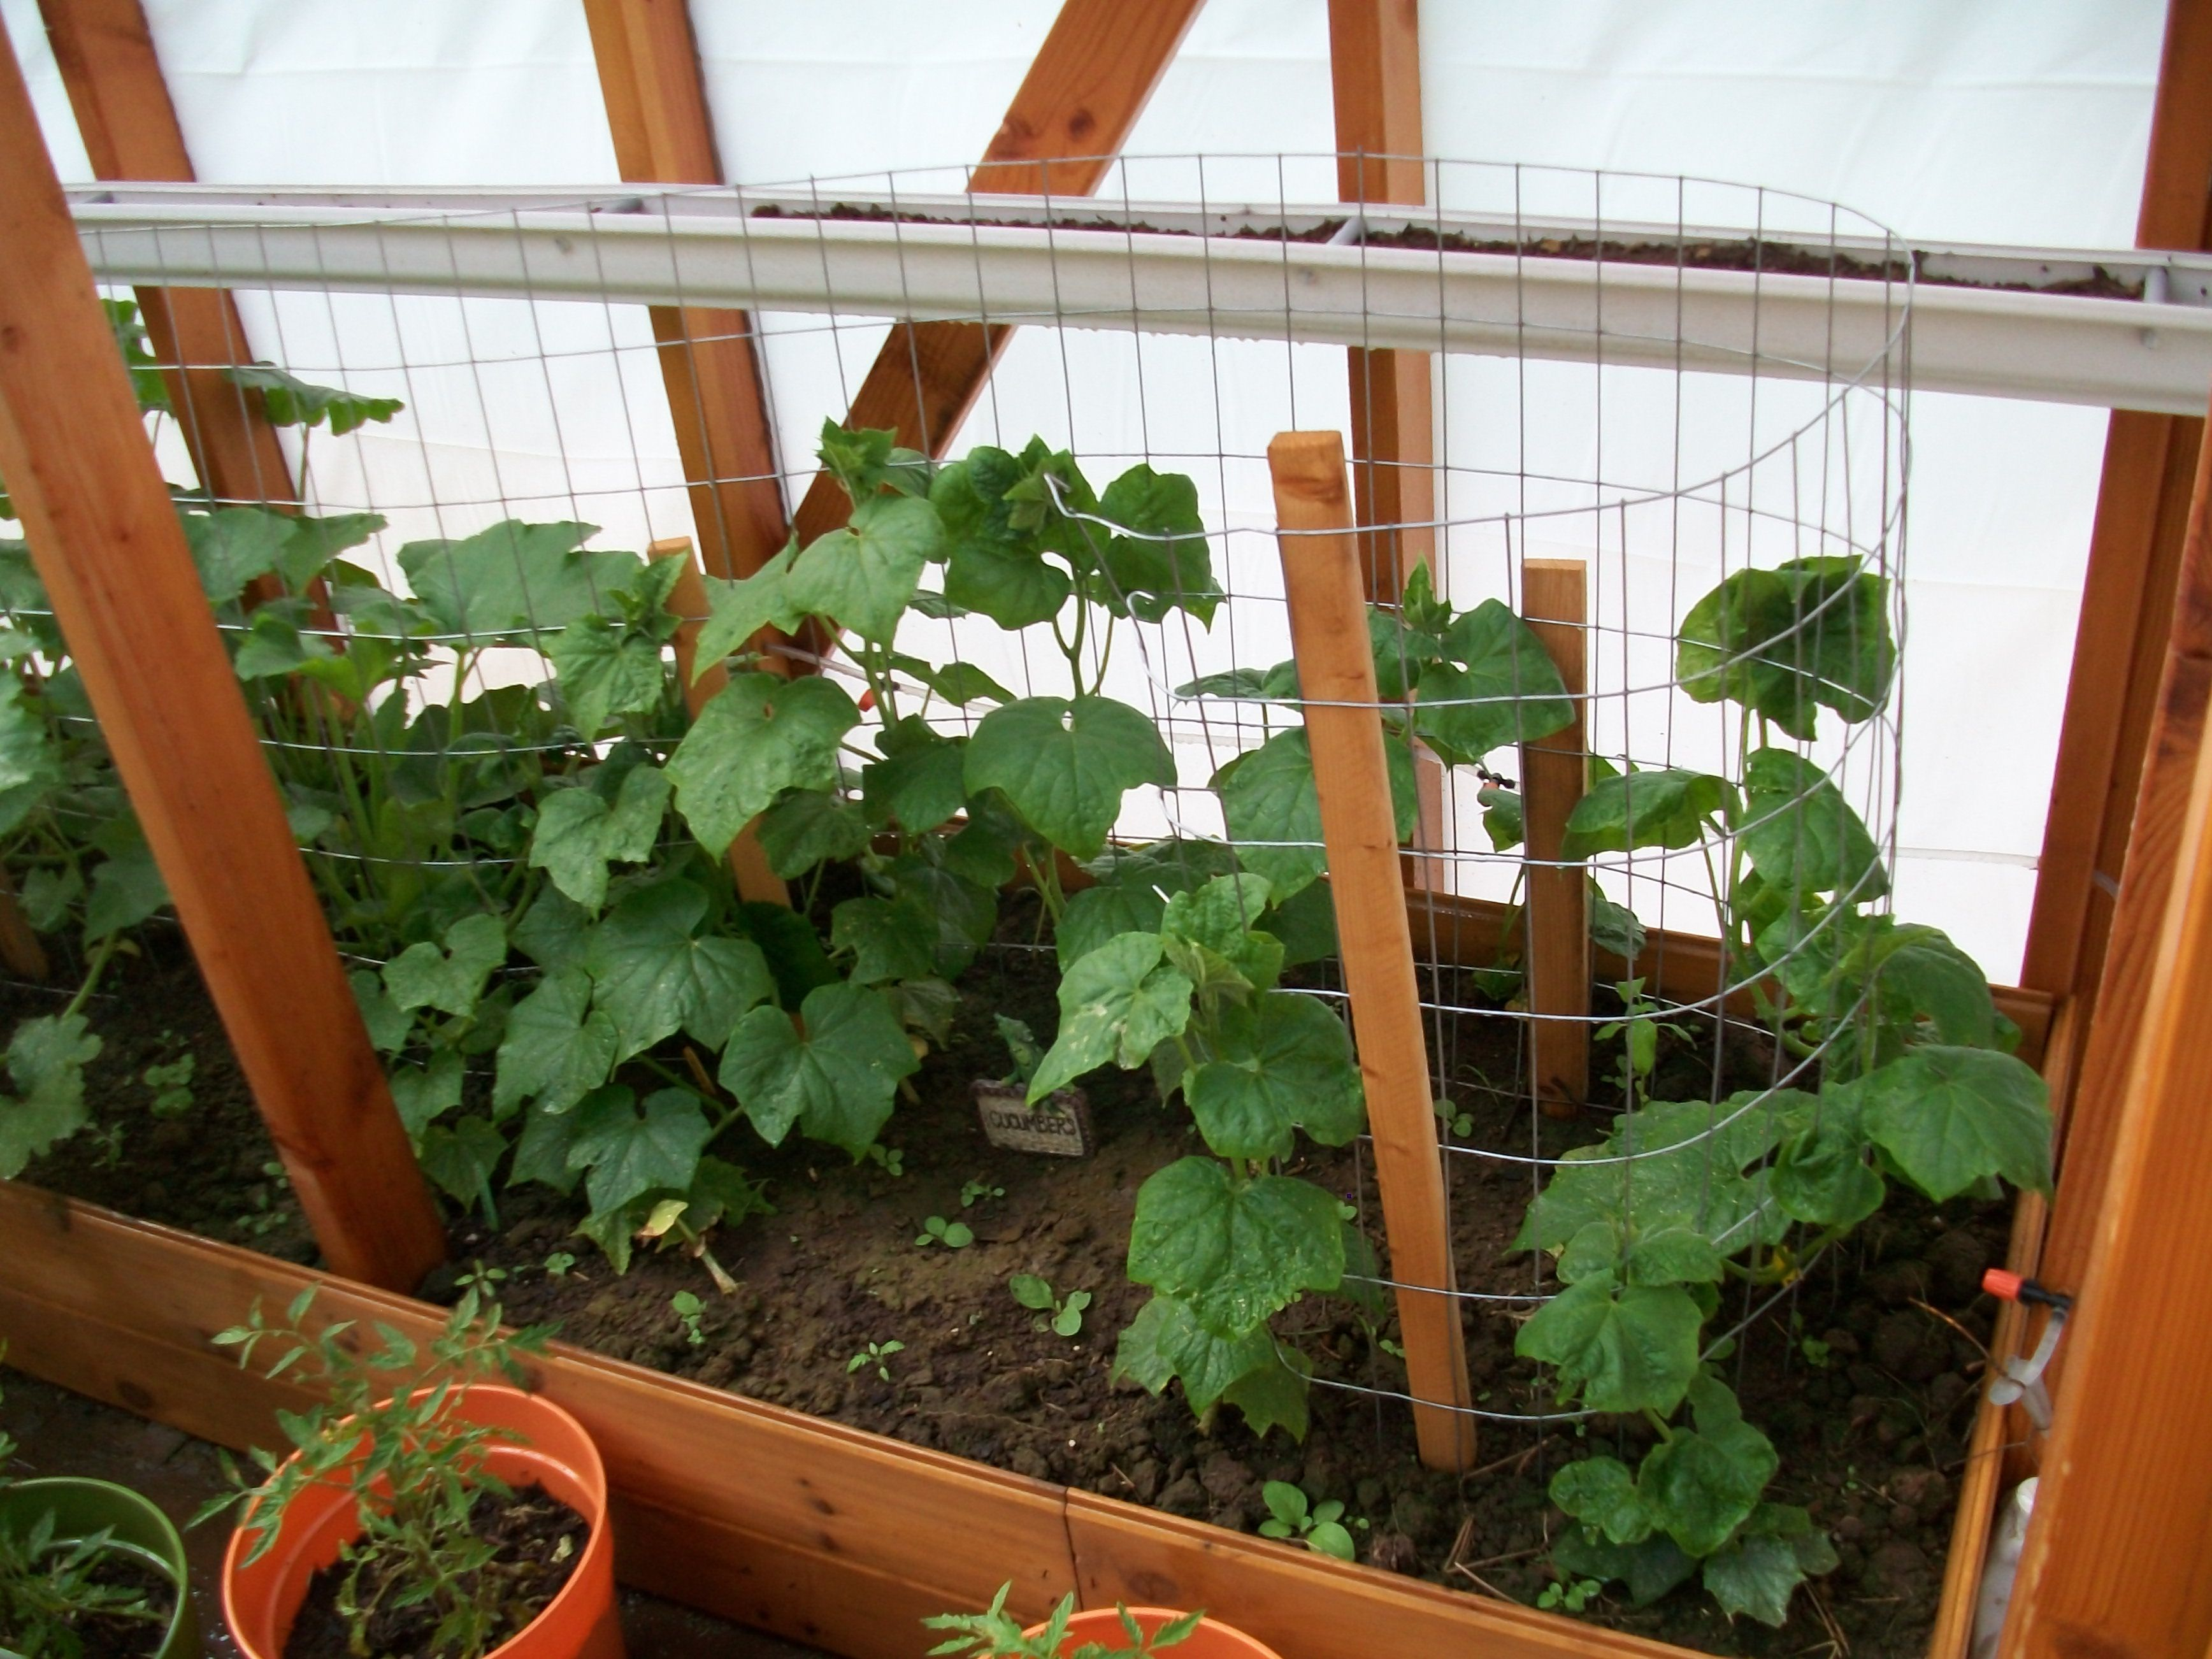 jayzn fruit ki you year and round jason ideas growing need book beginners greenhouse know vegetables a inspiring owning all by to gardening garden johns guide about everything